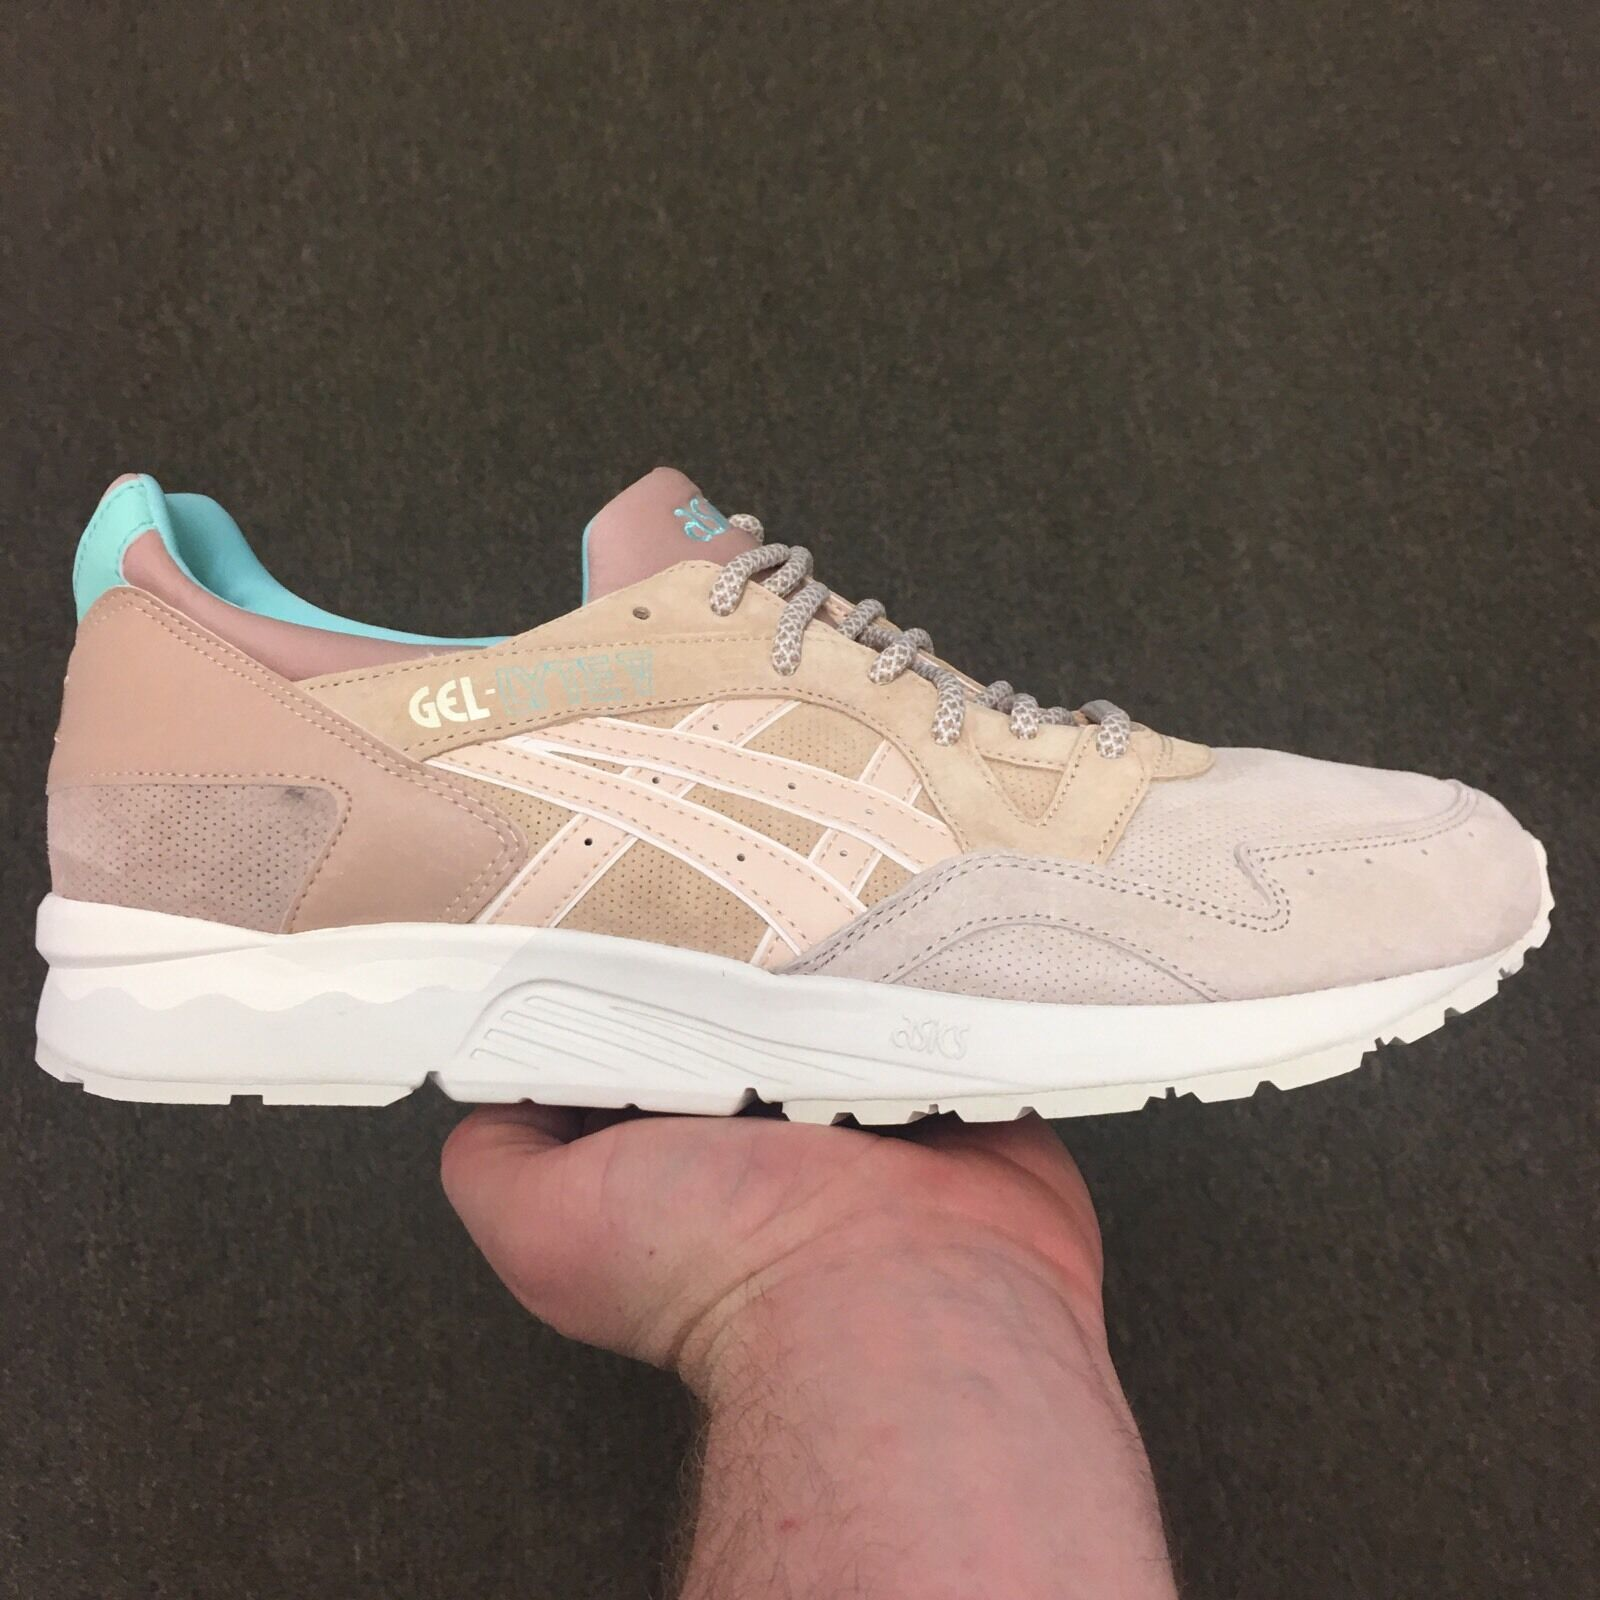 Offspring x Asics Gel Lyte V 5 Cobbled Covent Garden Market Sz 13 H63VK-0505